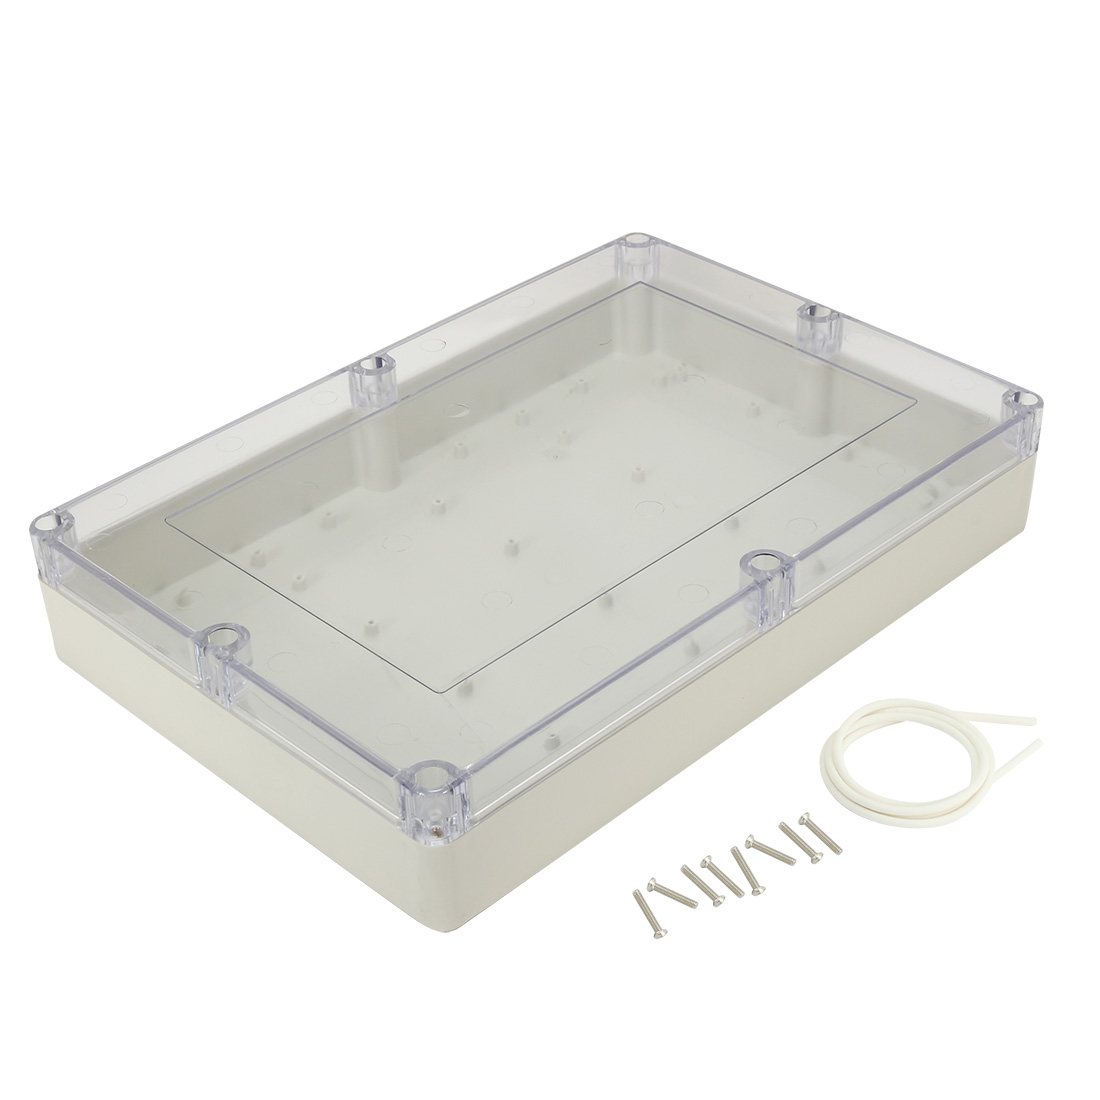 "15""x10.2""x3.35""(380mmx260mmx85mm) ABS Junction Box Universal Electric Project Enclosure Clear"